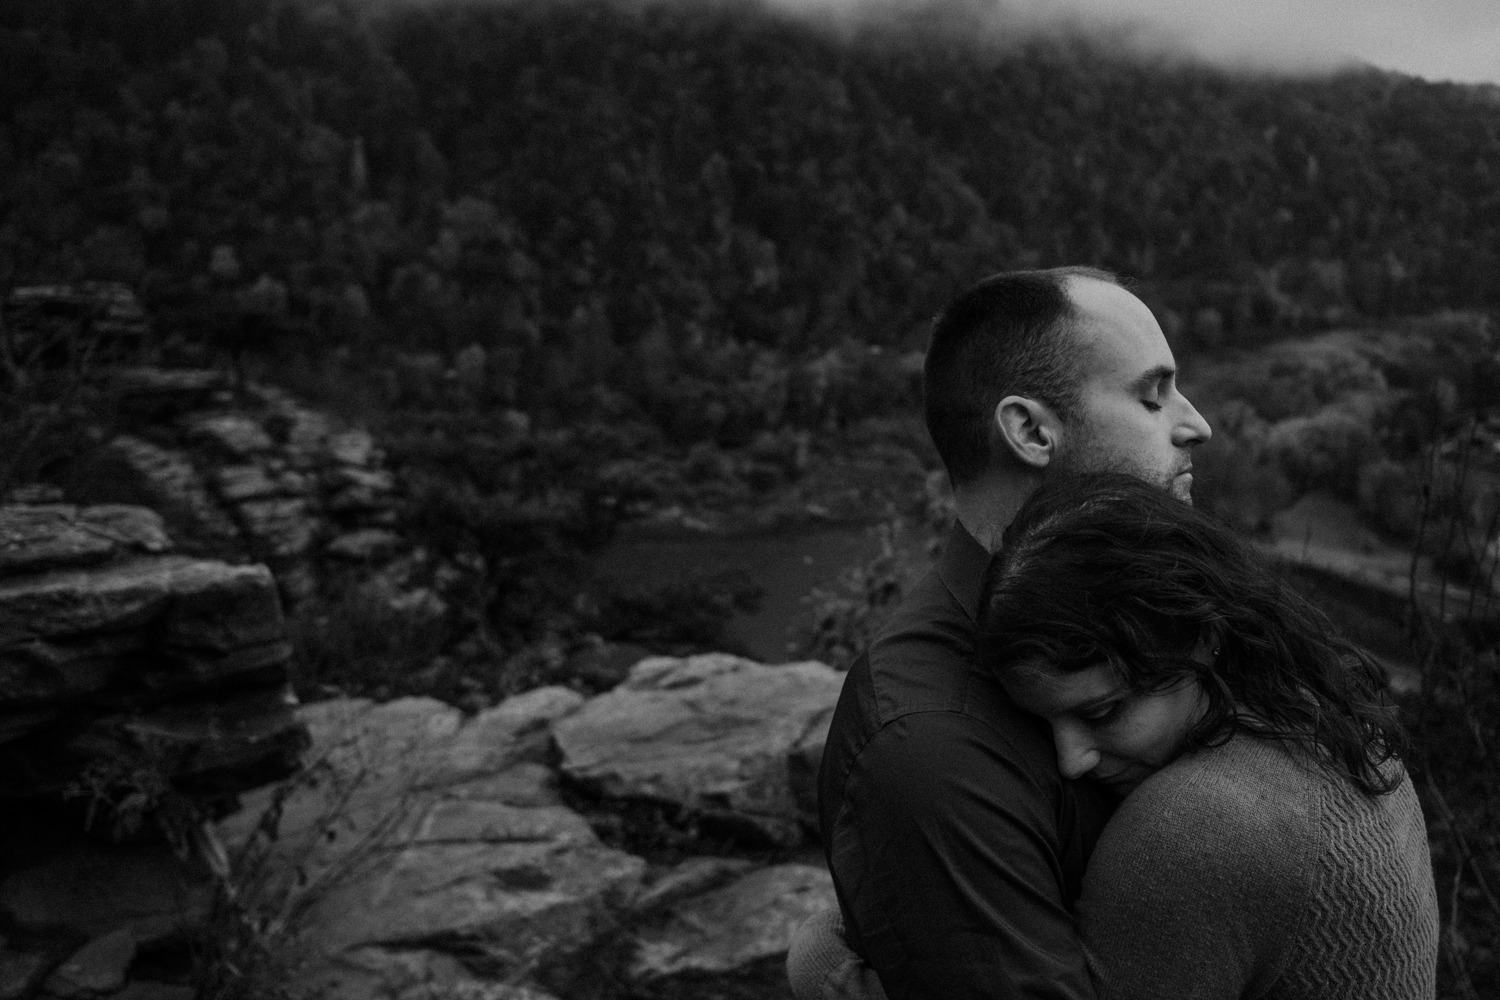 harpers ferry hiking mountain engagement session-21.jpg